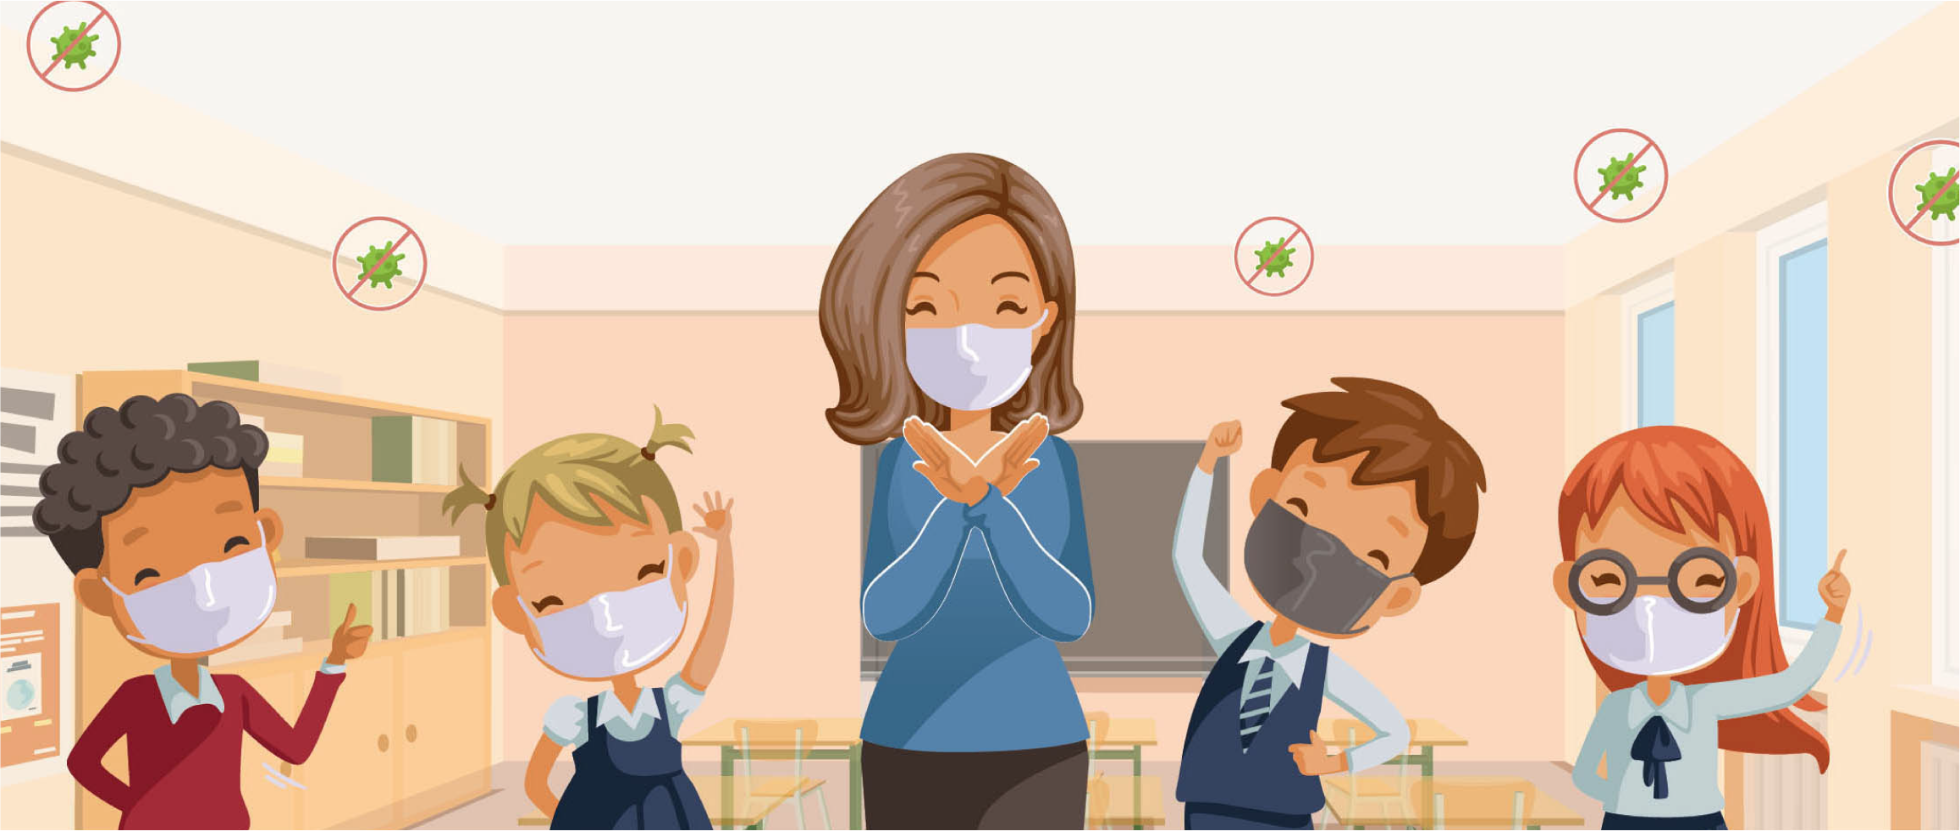 When germs go learning grows